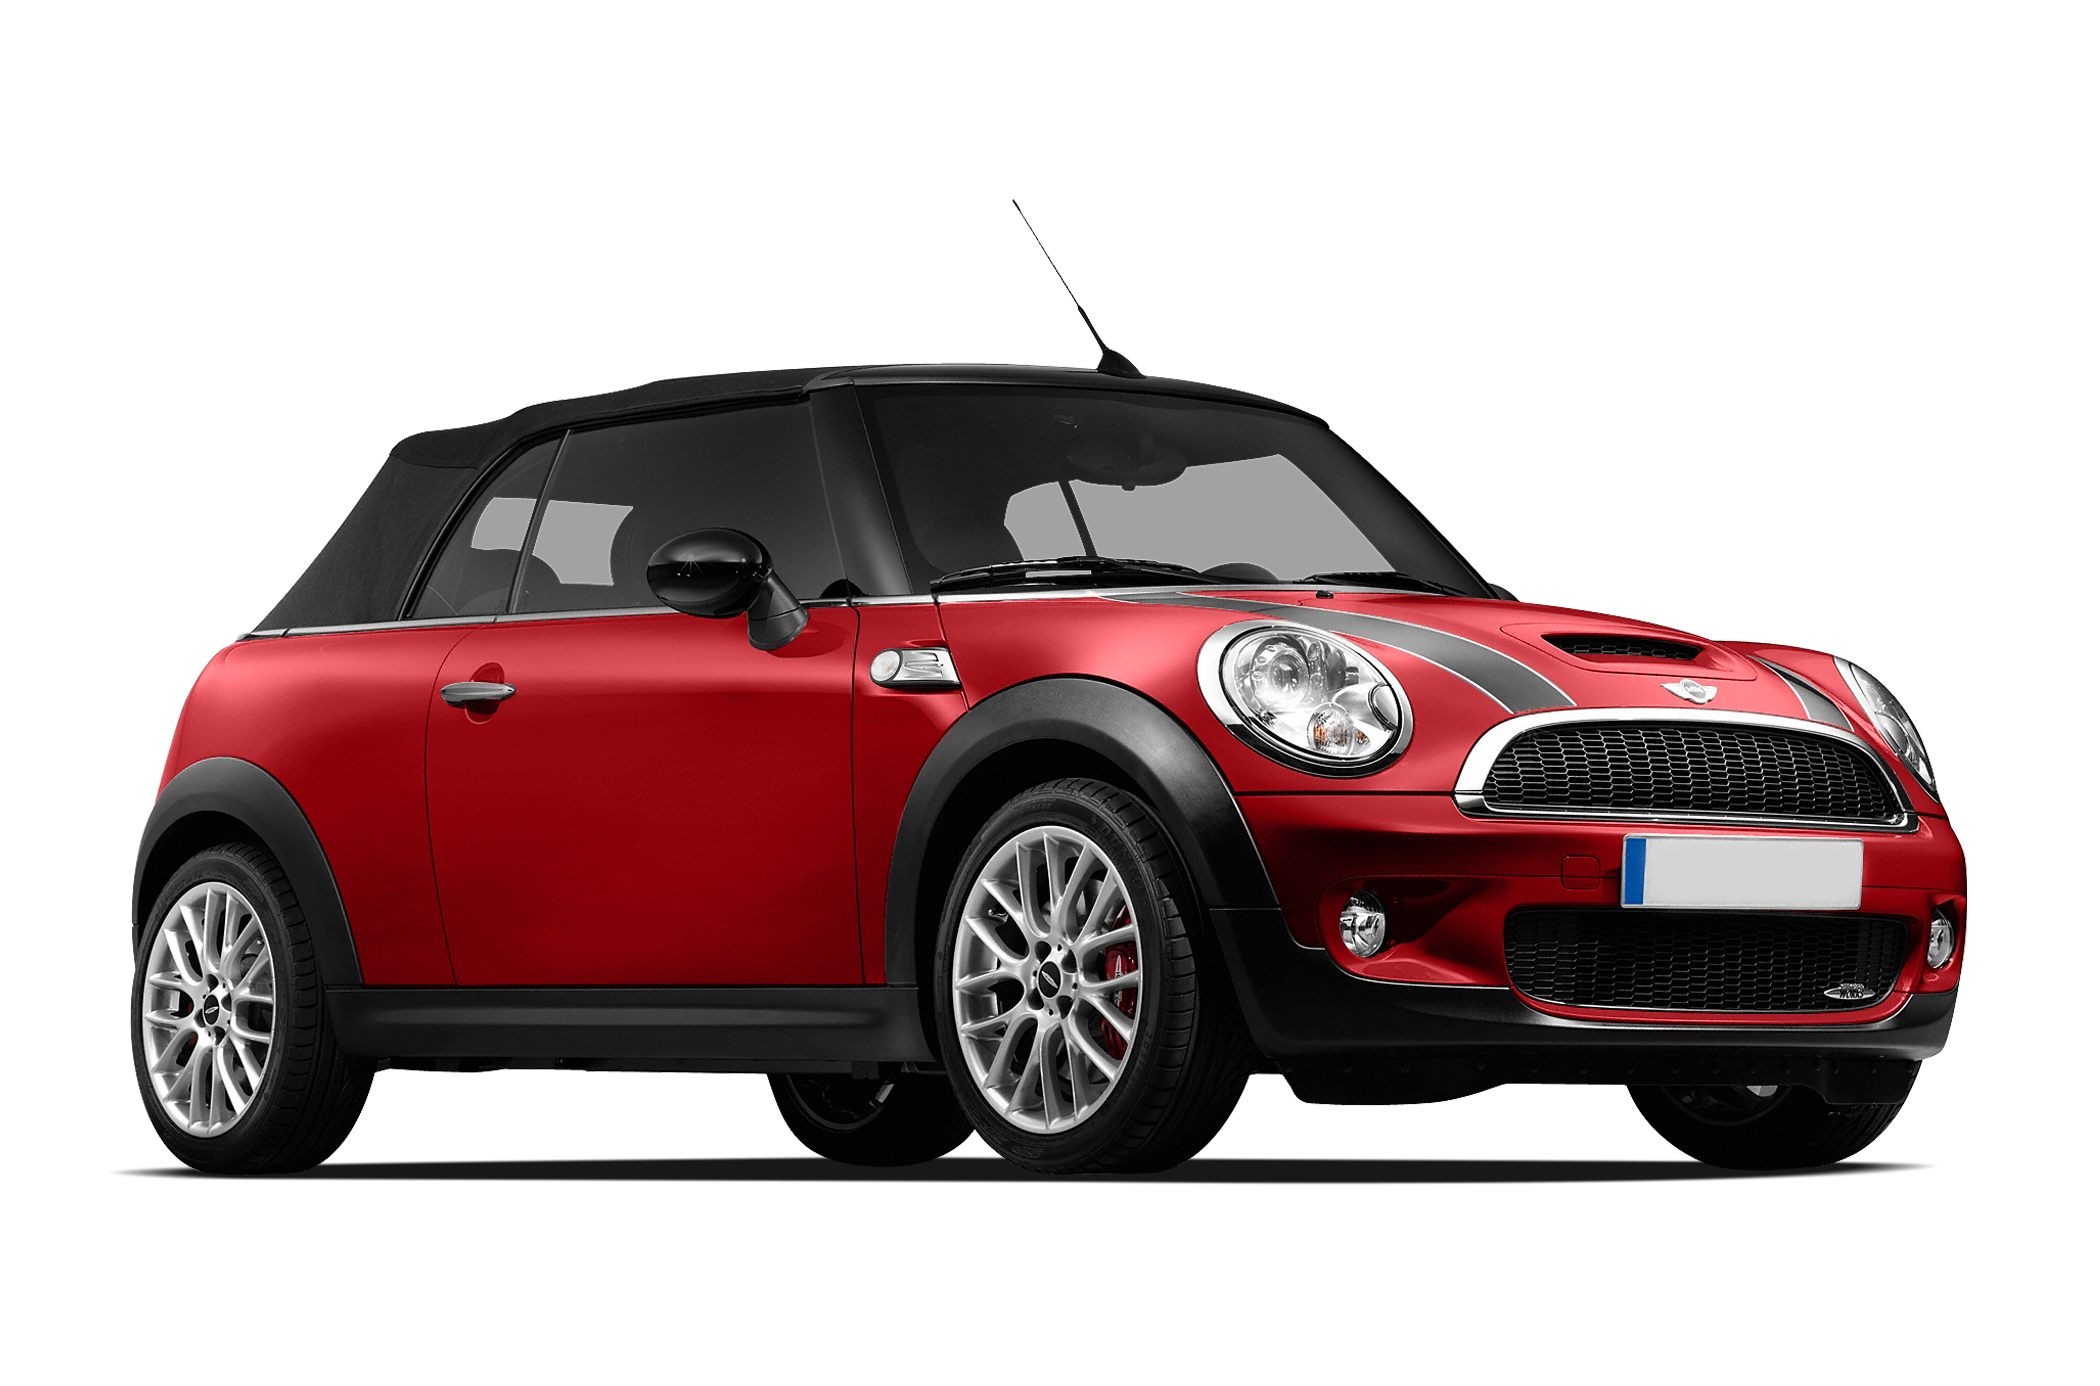 2009 MINI John Cooper Works